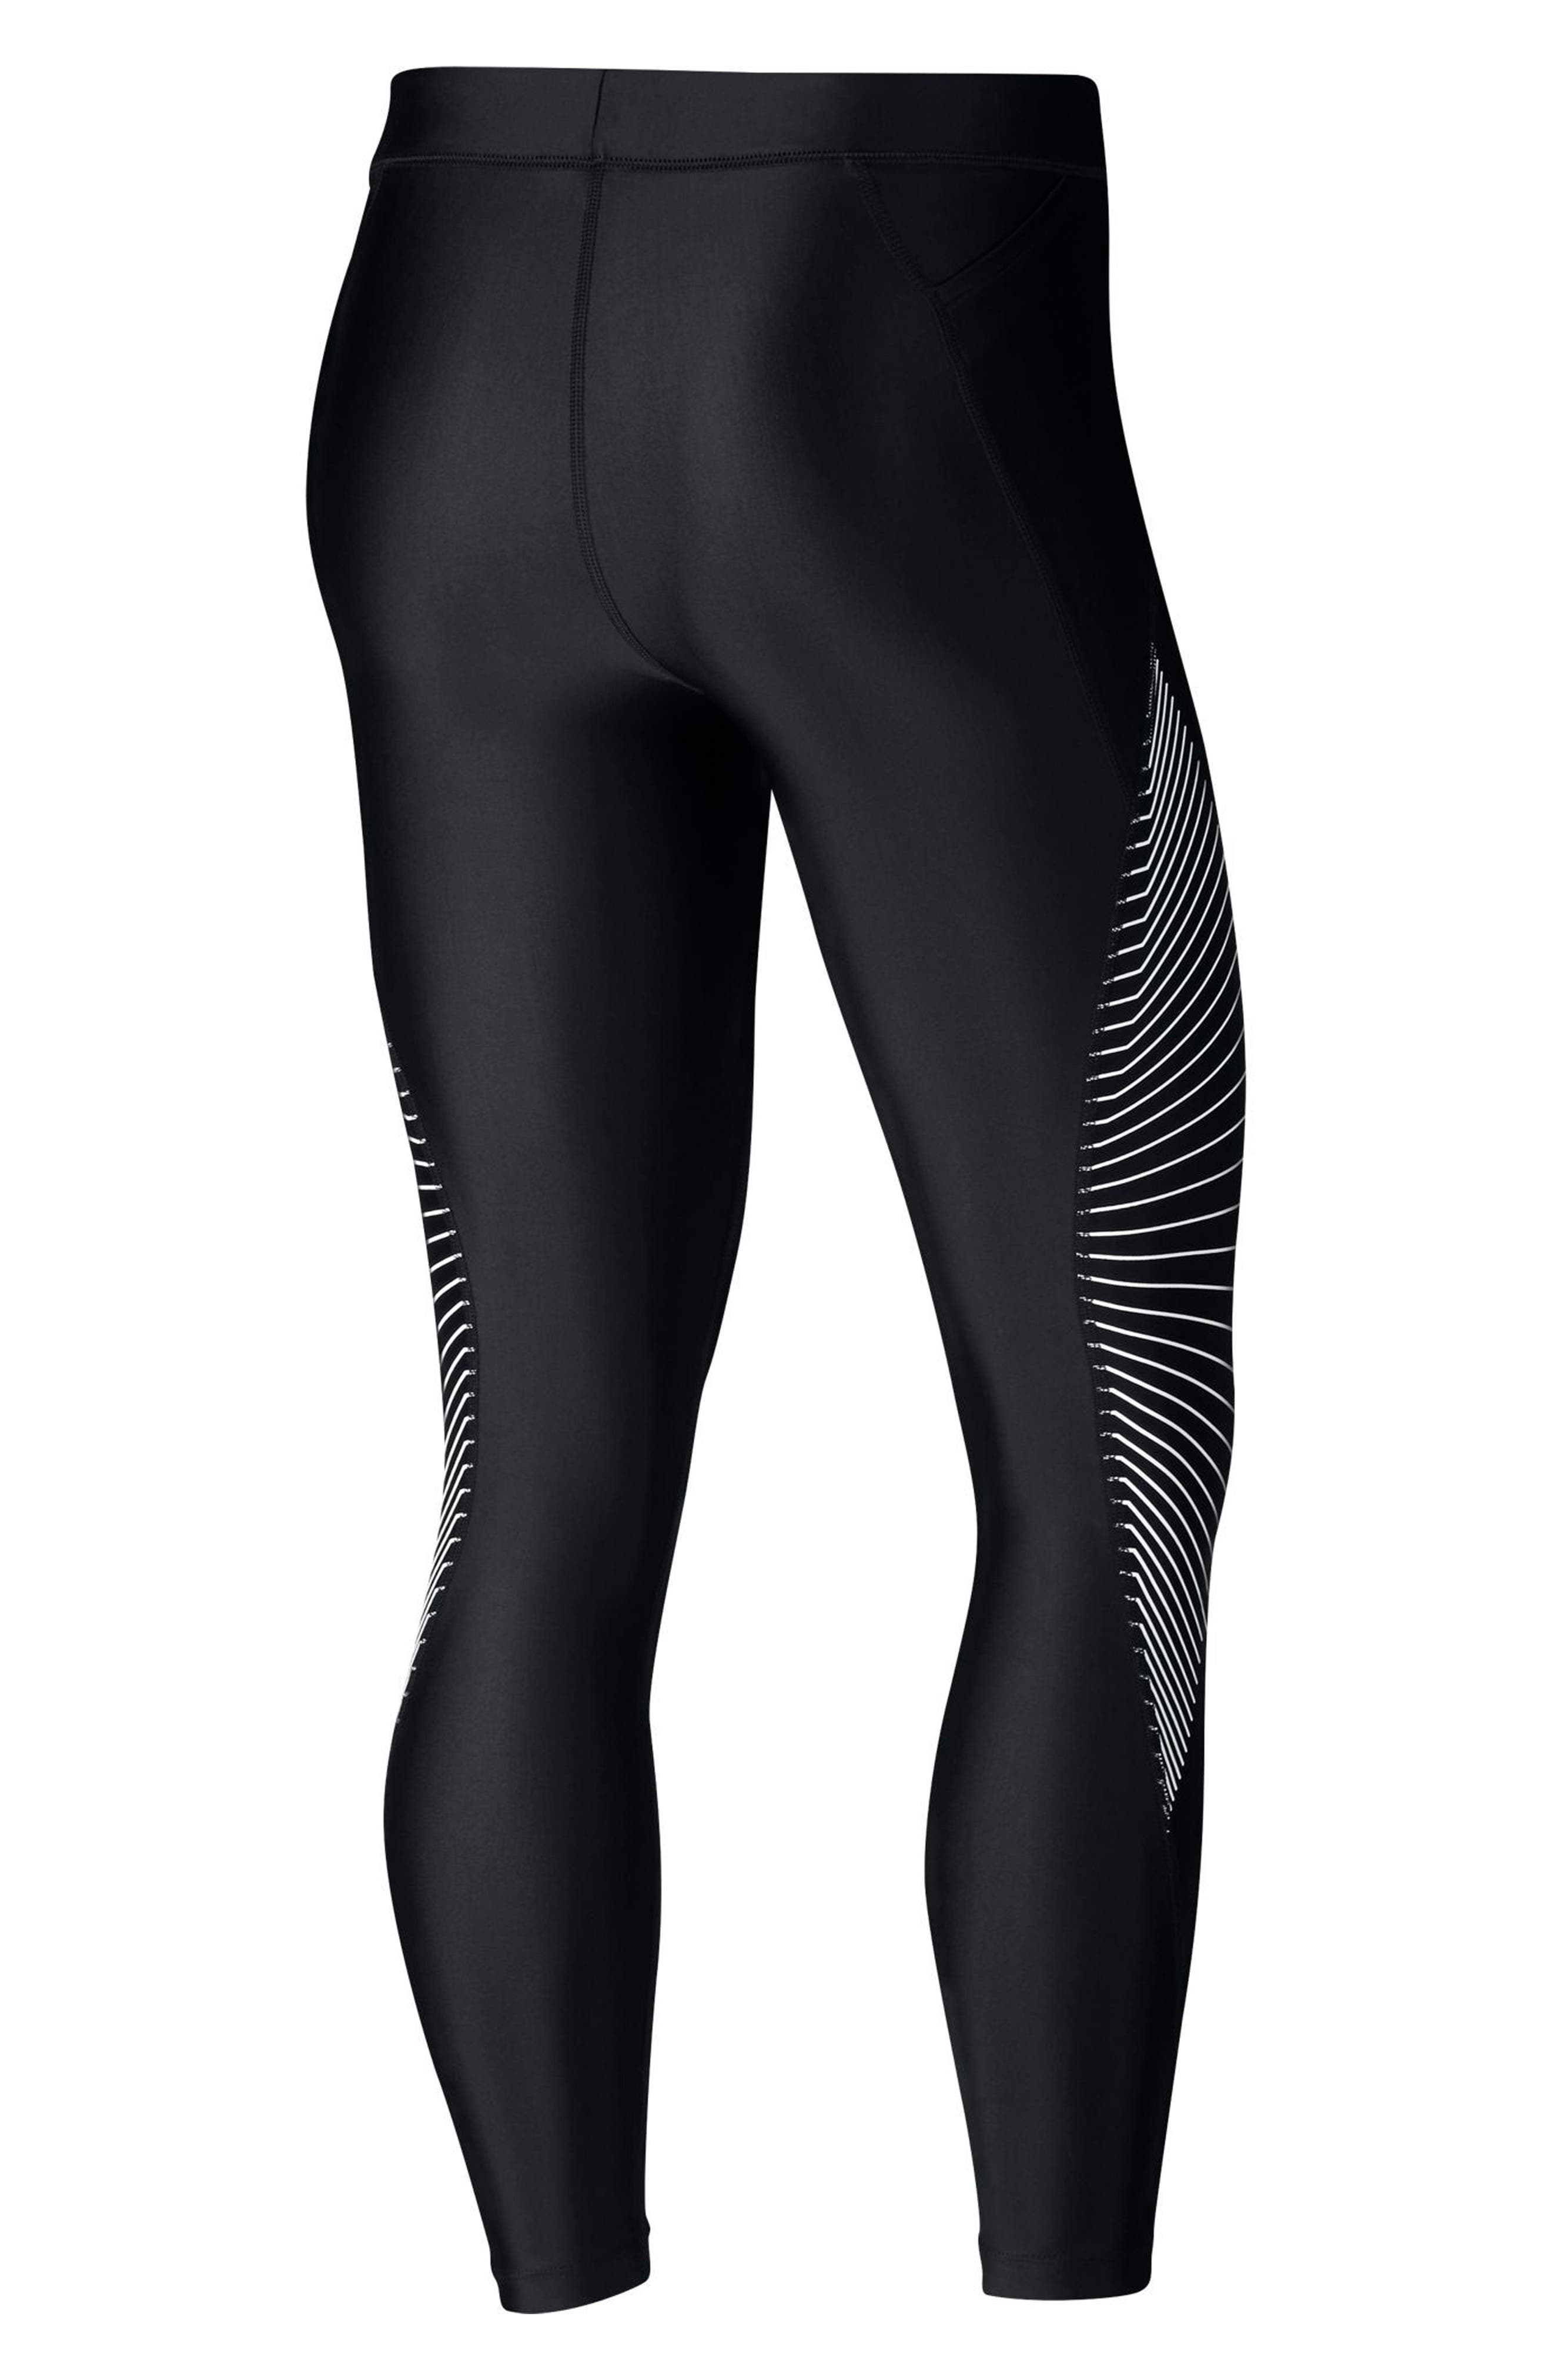 Power Speed 7/8 Women's Graphic Running Tights,                             Alternate thumbnail 2, color,                             010